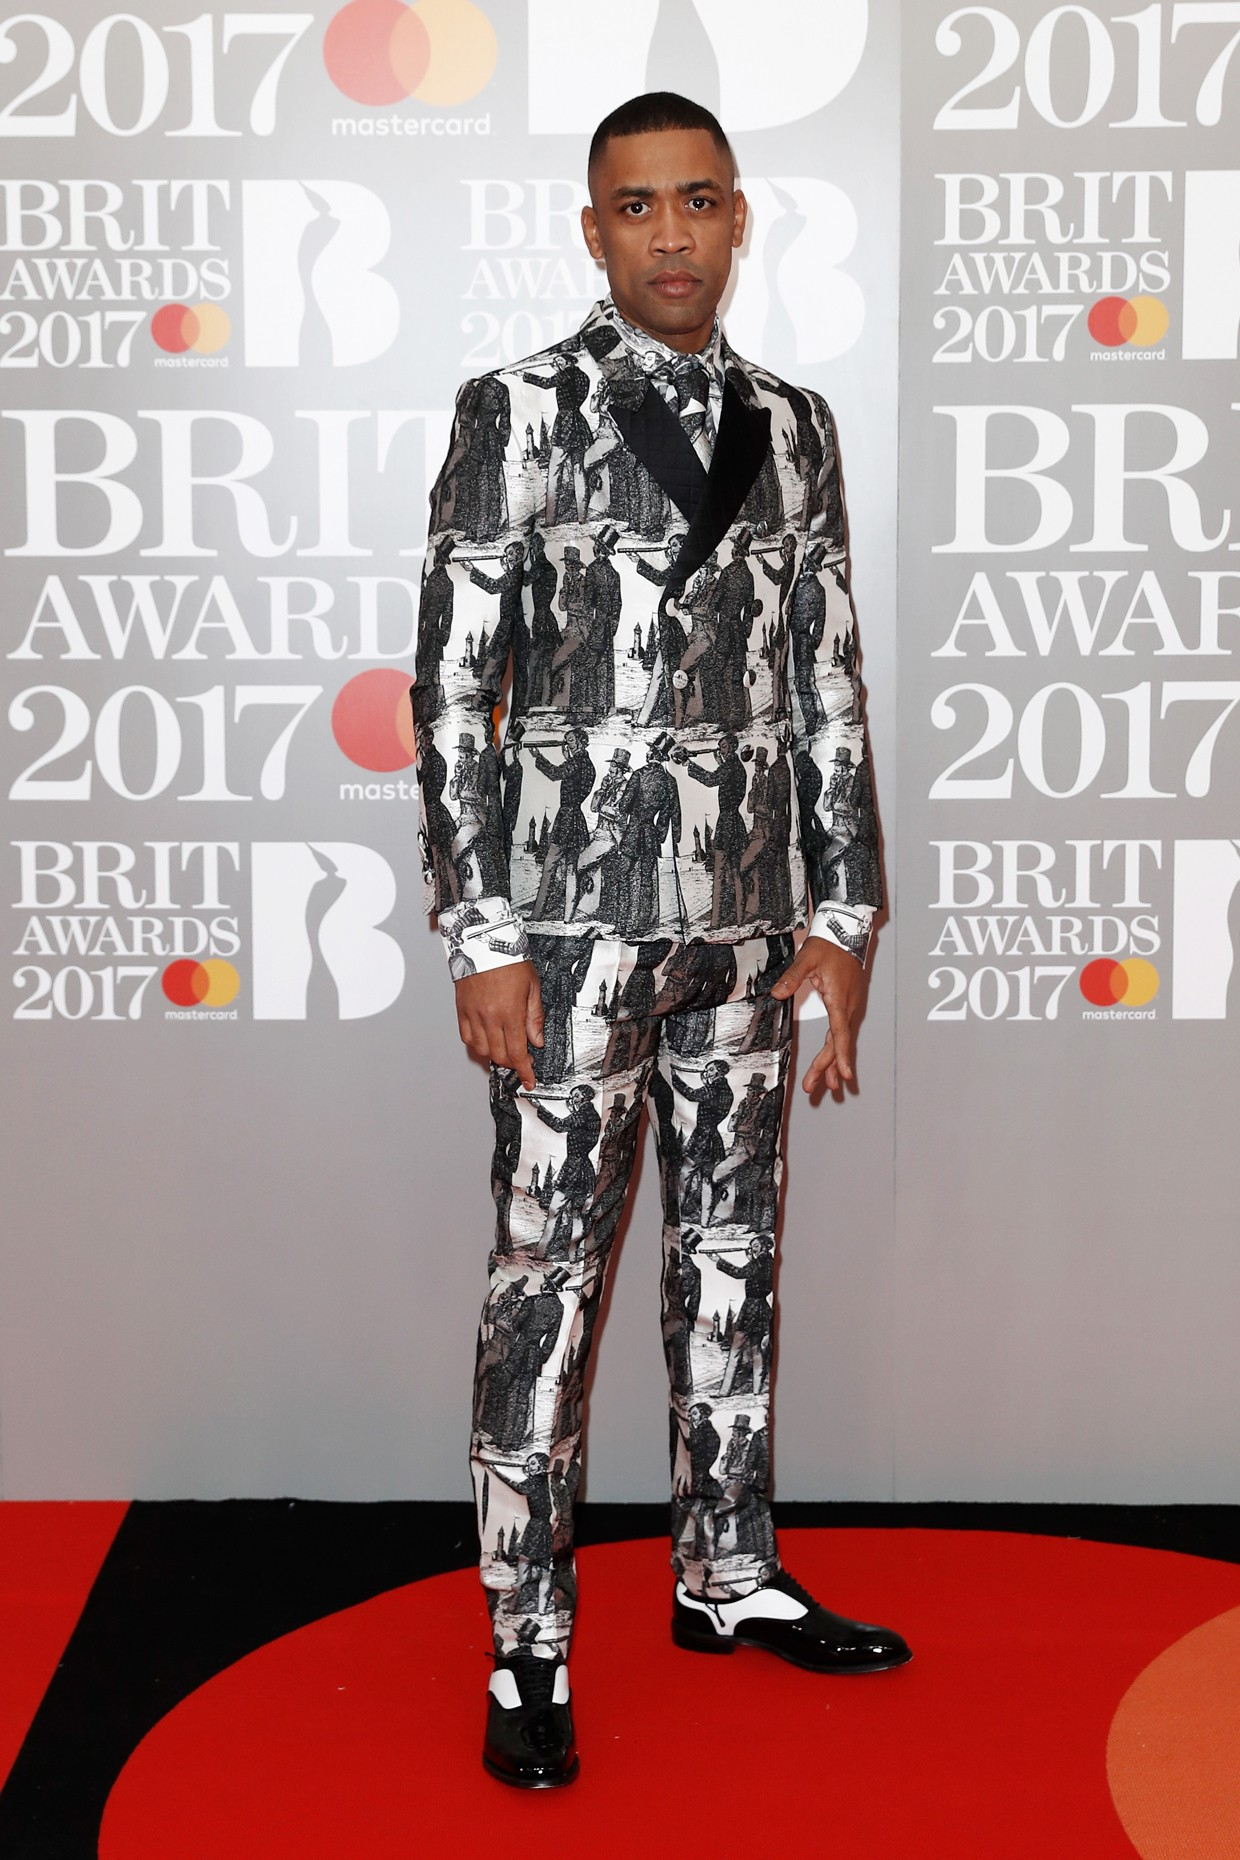 Wiley attends the Brit Awards 2017 at the O2 Arena on Feb. 22, 2017 in London, England.